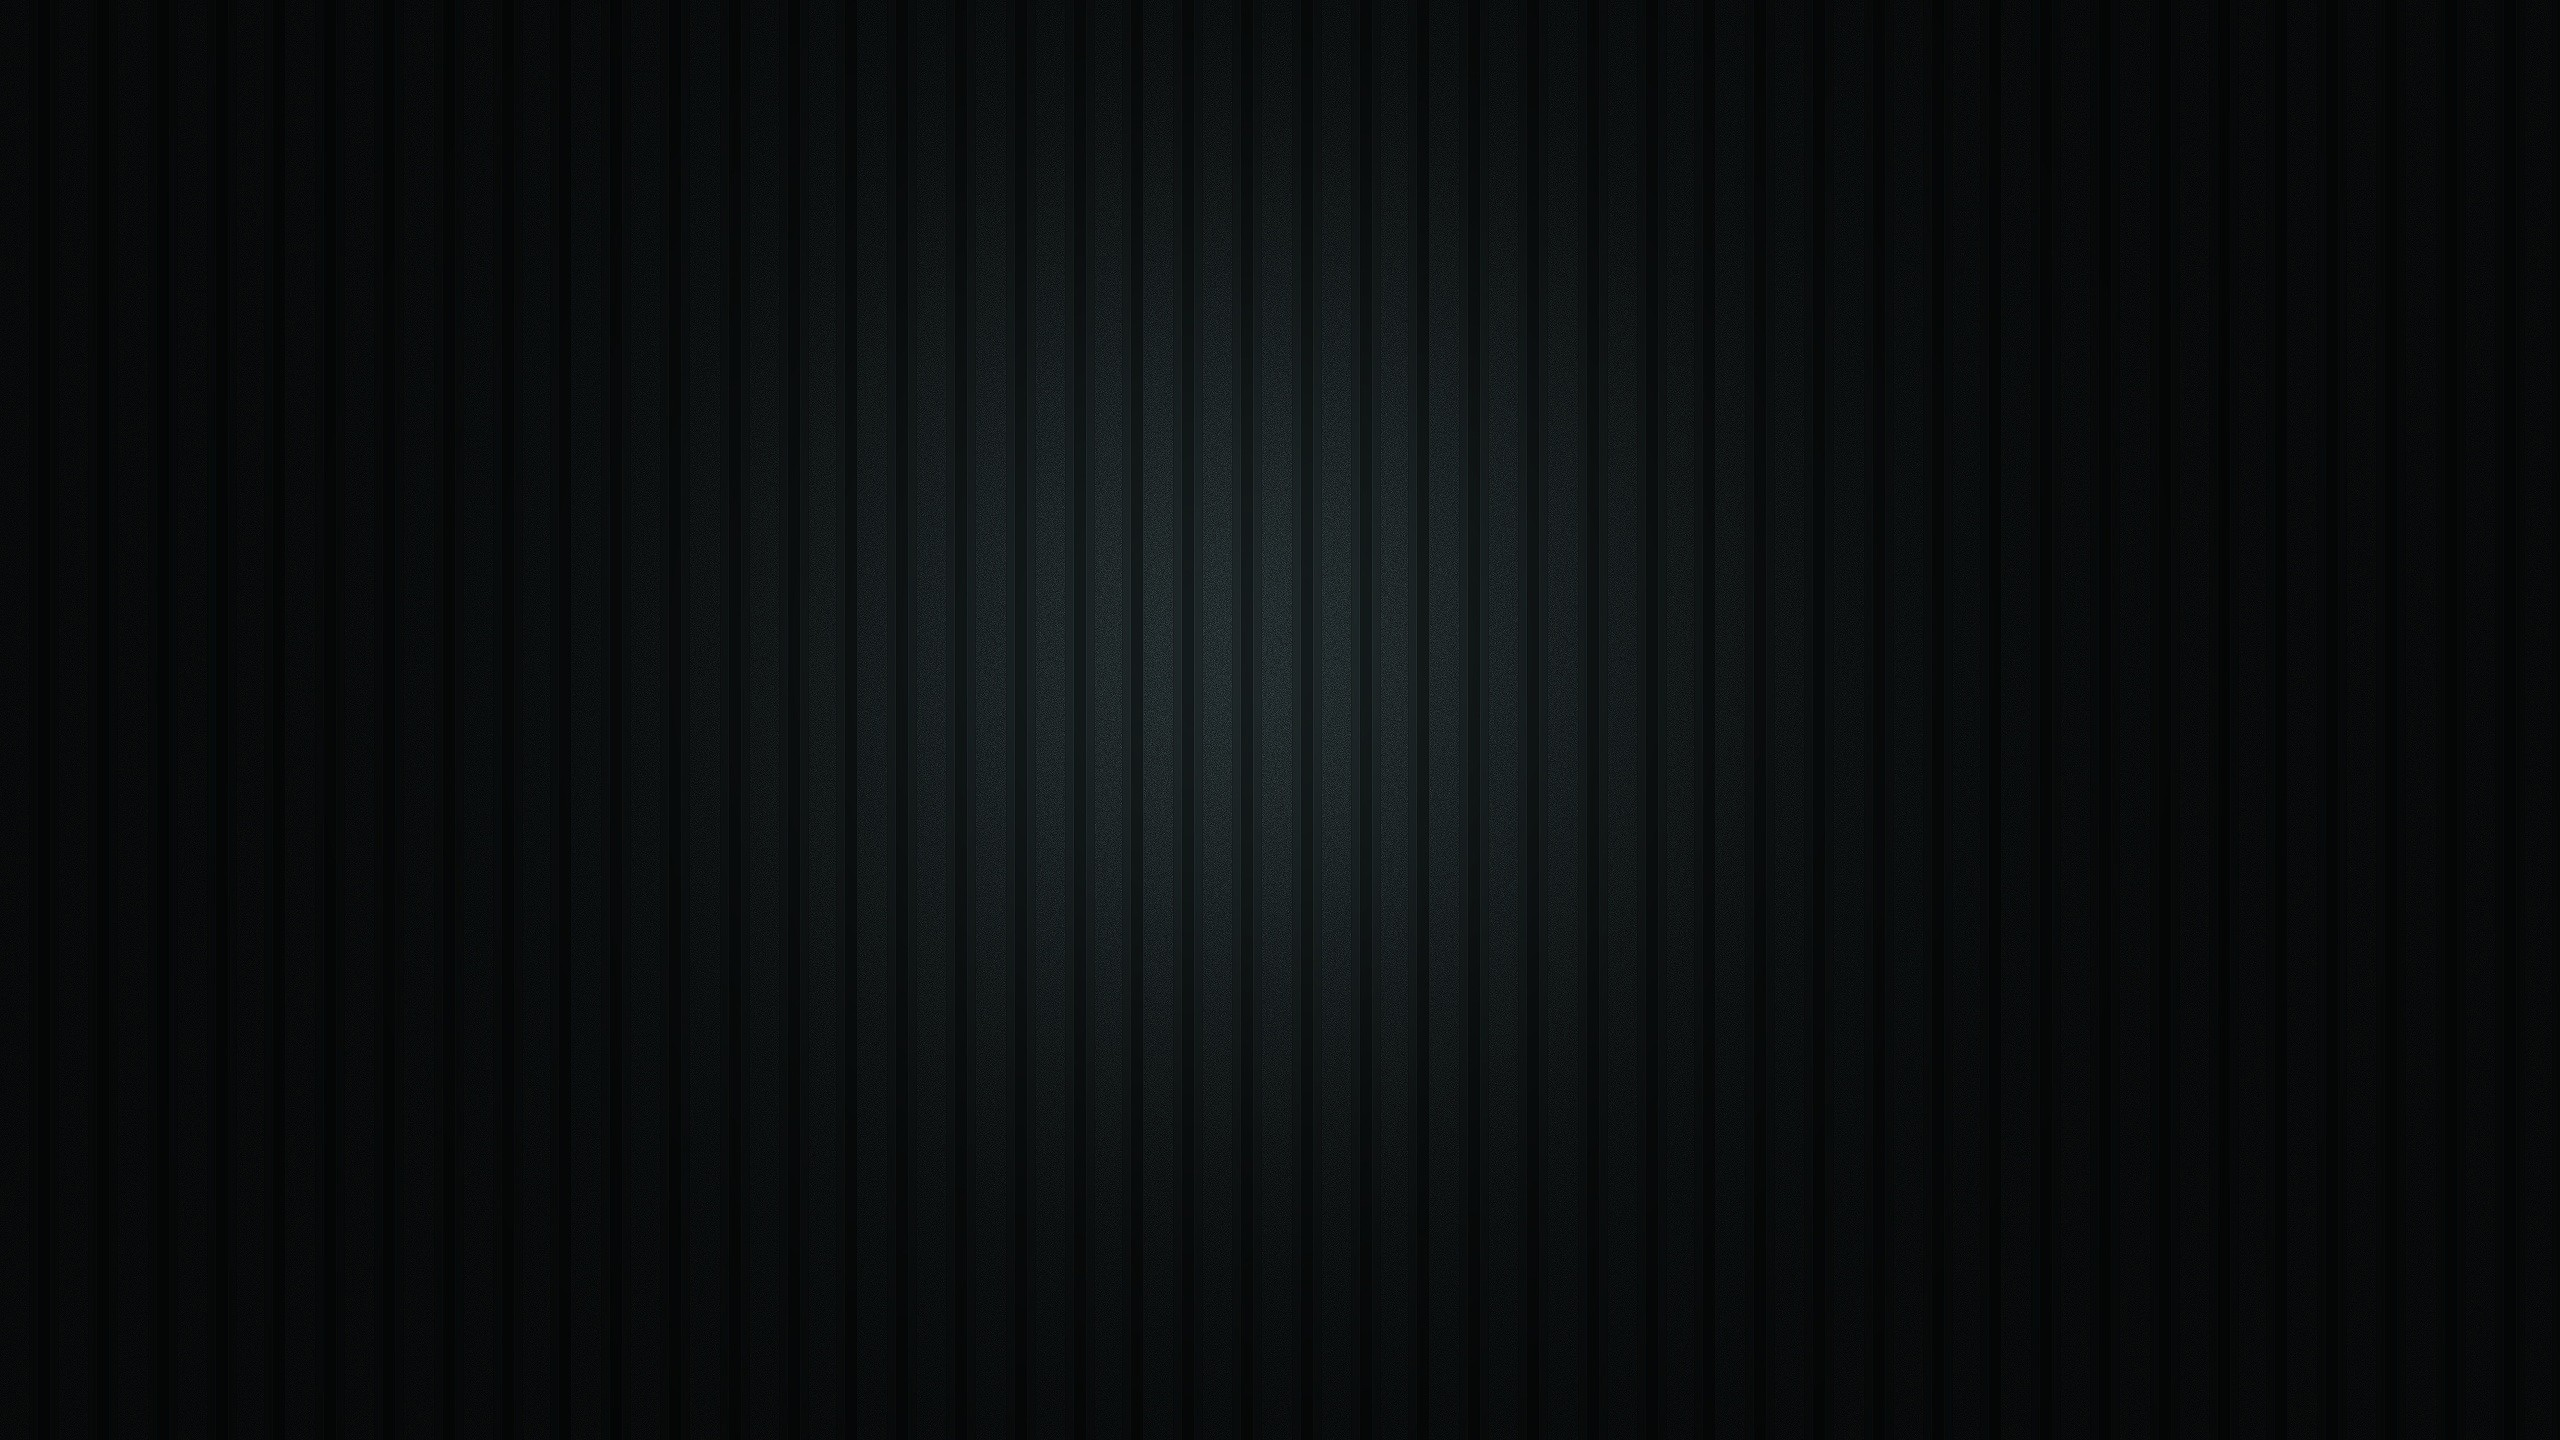 1920x1200 Wallpaperwiki HD Wallpaper Otife Dark Black Plain